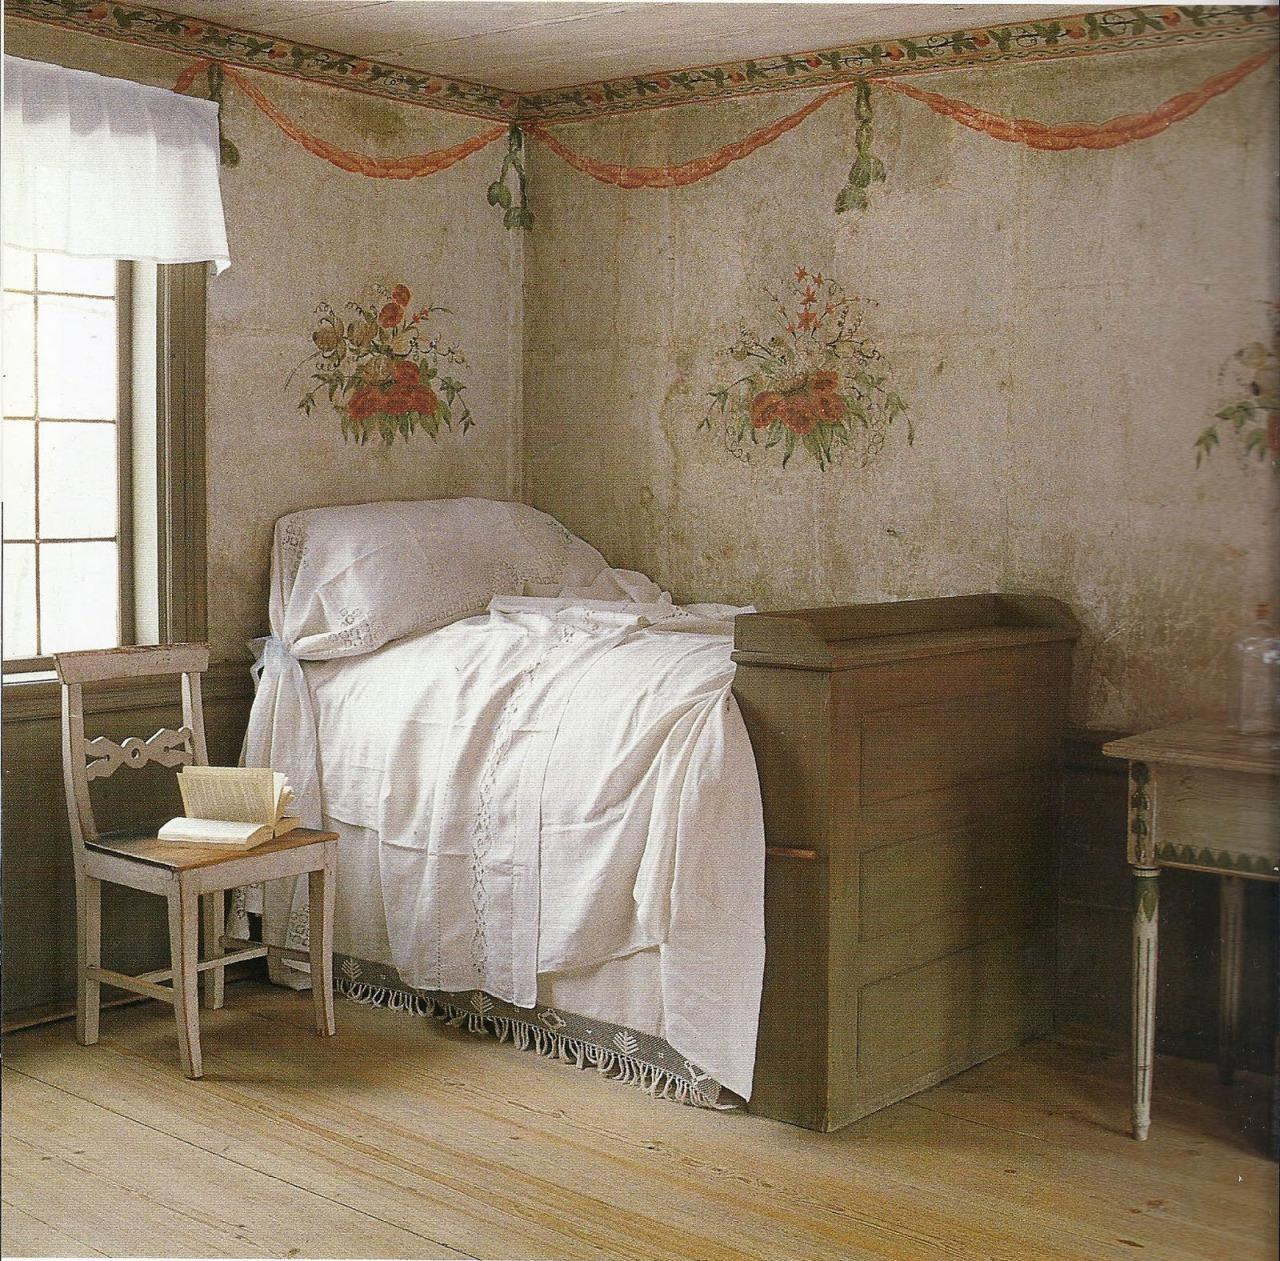 White sheets posies on the walls